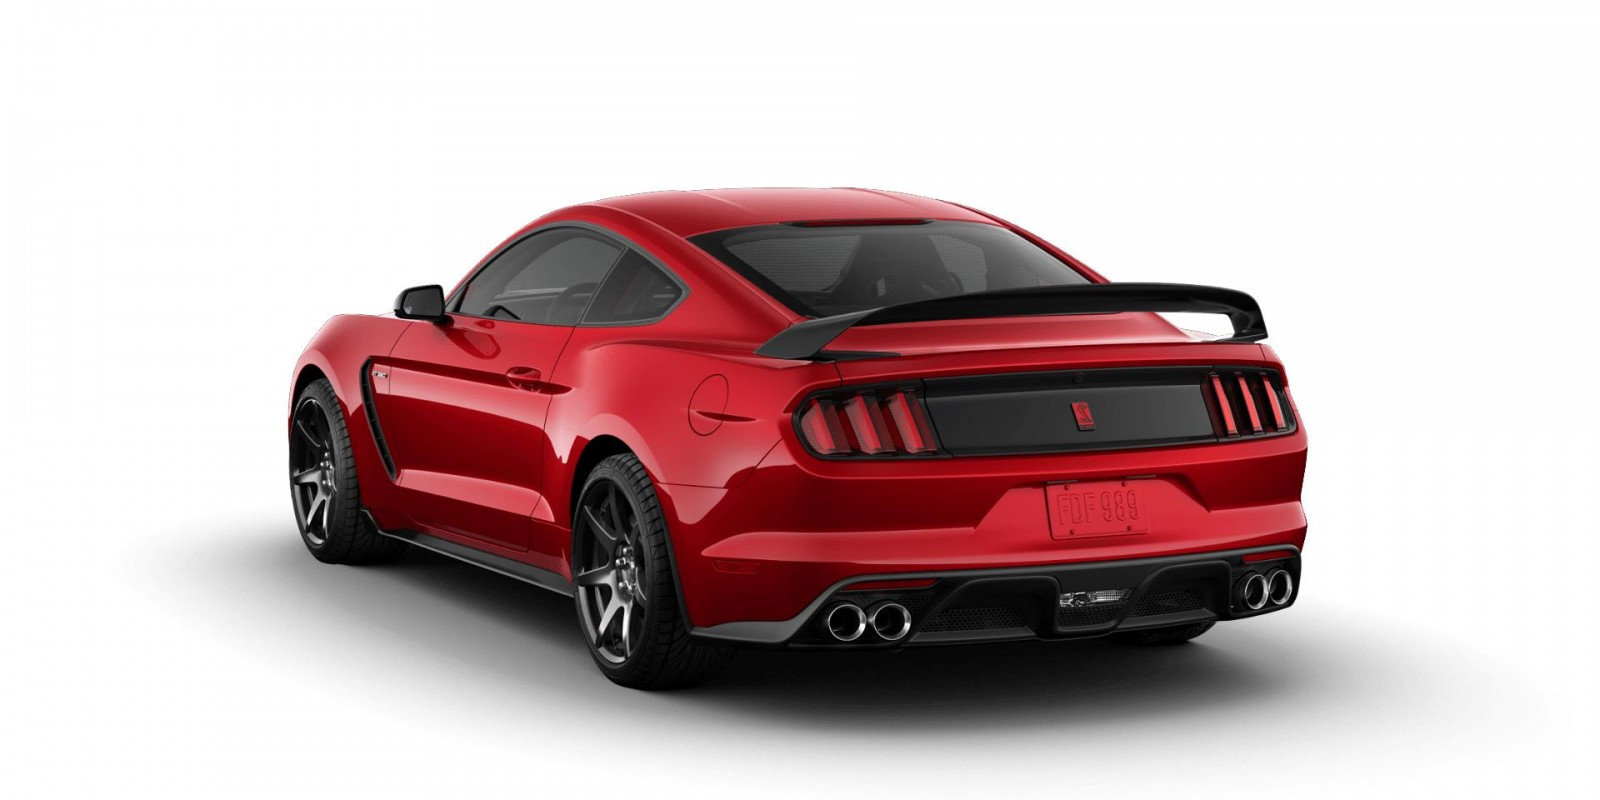 2014 mustang gt 350 specs autos post. Black Bedroom Furniture Sets. Home Design Ideas